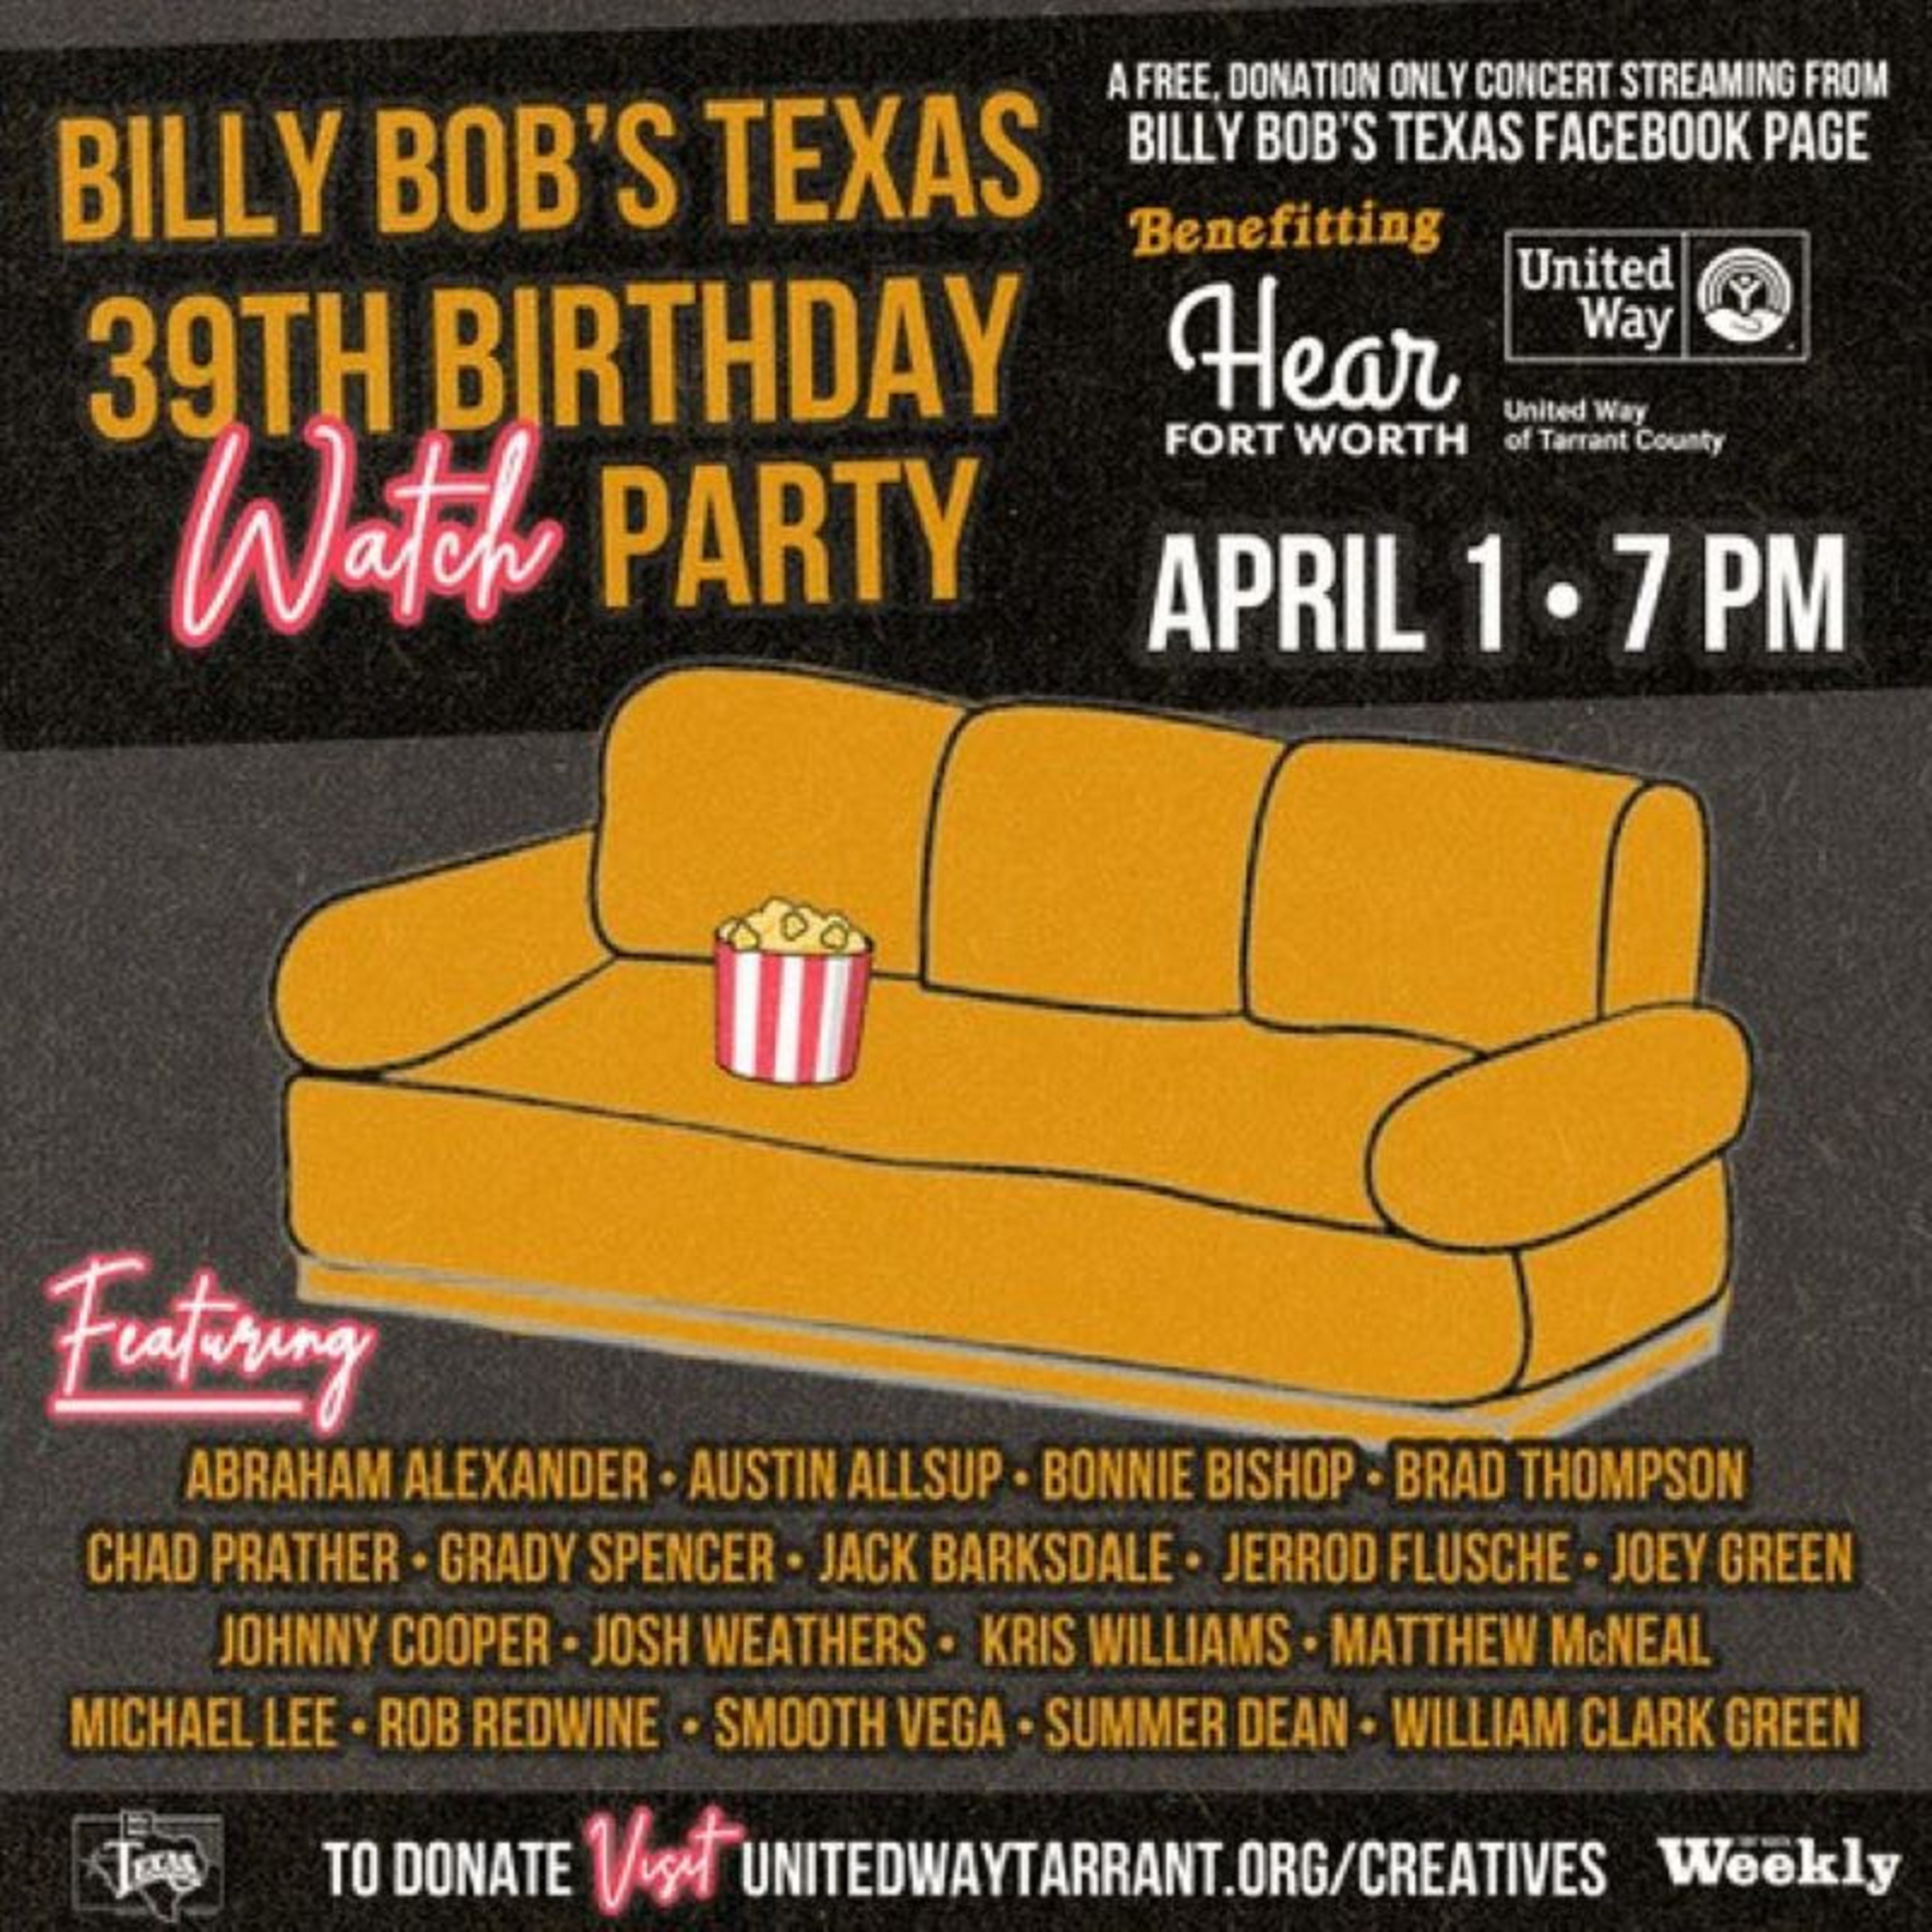 Billy Bob's Texas Hosts Live Watch Party To Celebrate Its 39th Anniversary